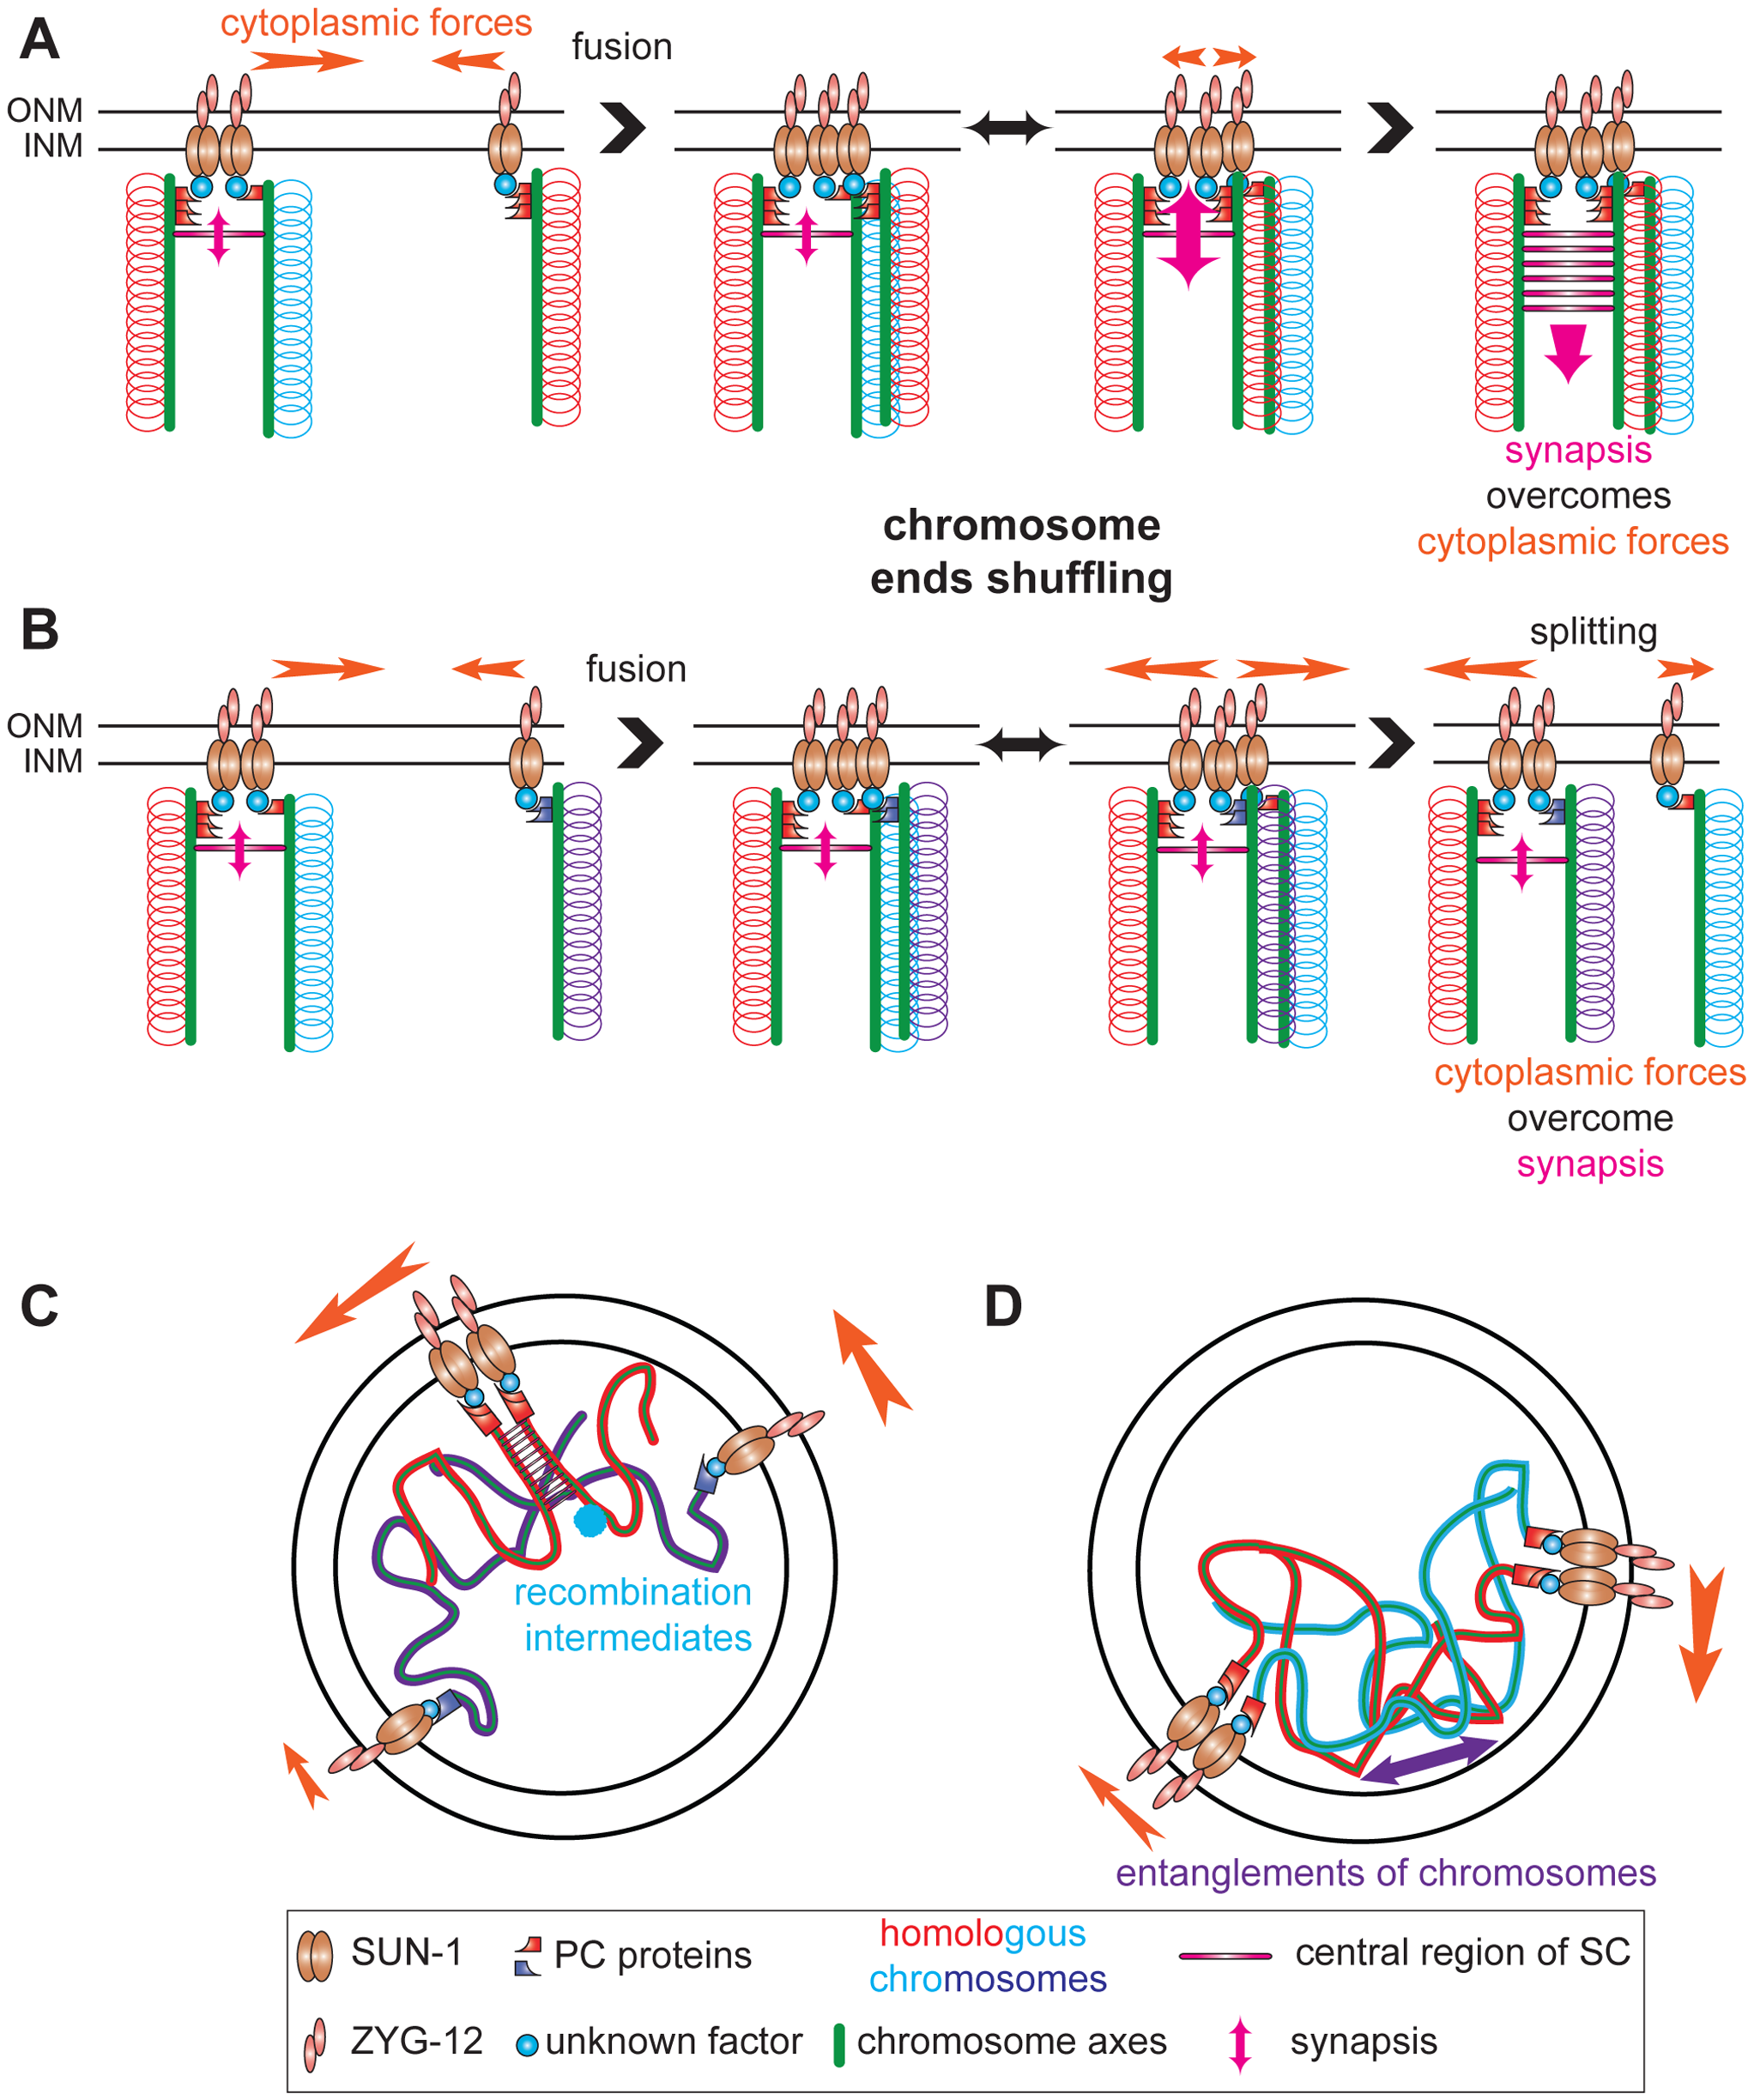 Establishment of synapsis and formation of high speed via shuffling of chromosome ends through SUN-1 patches.